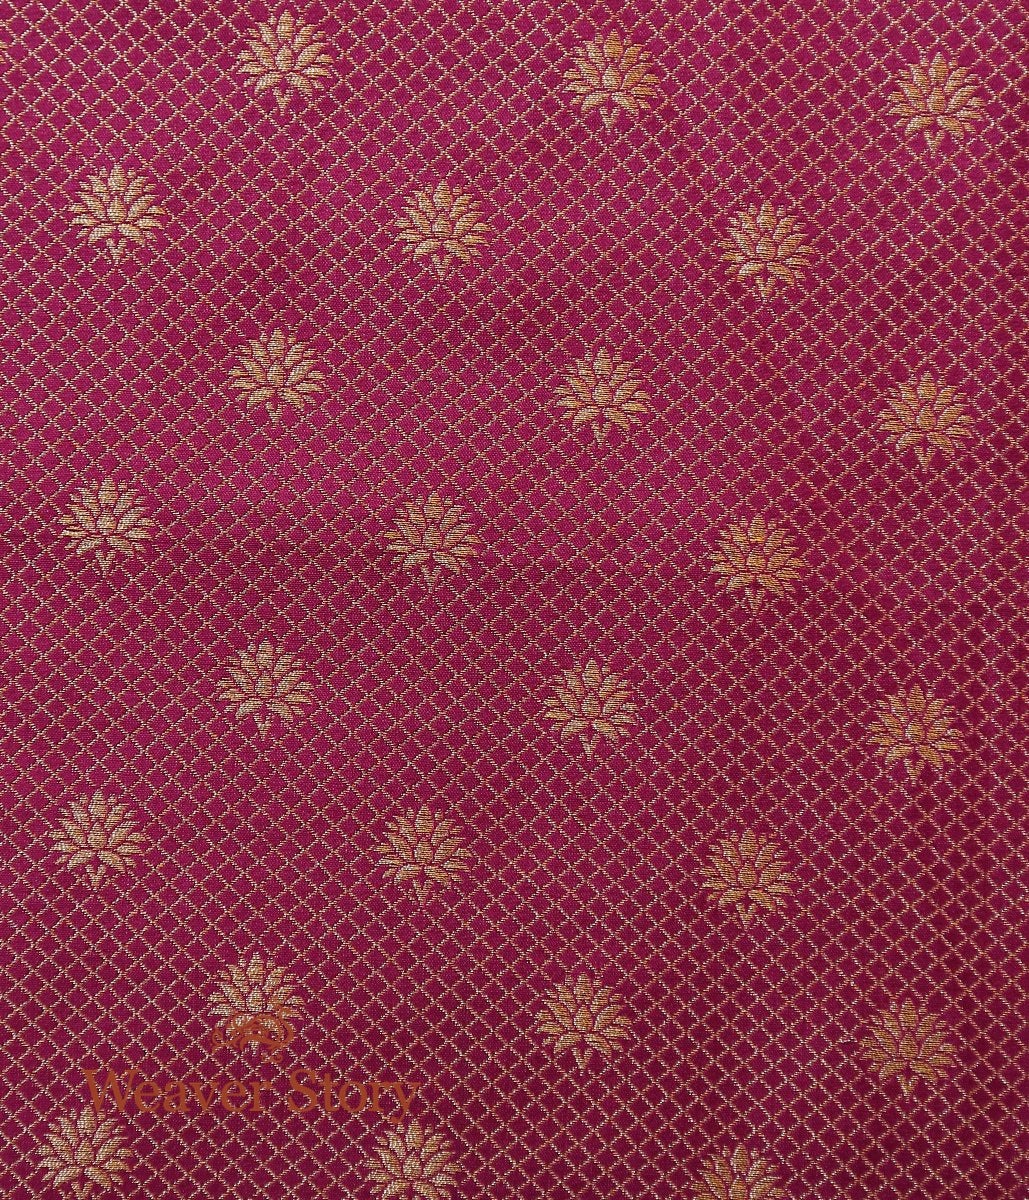 Handwoven Banarasi Tanchoi fabric with Border